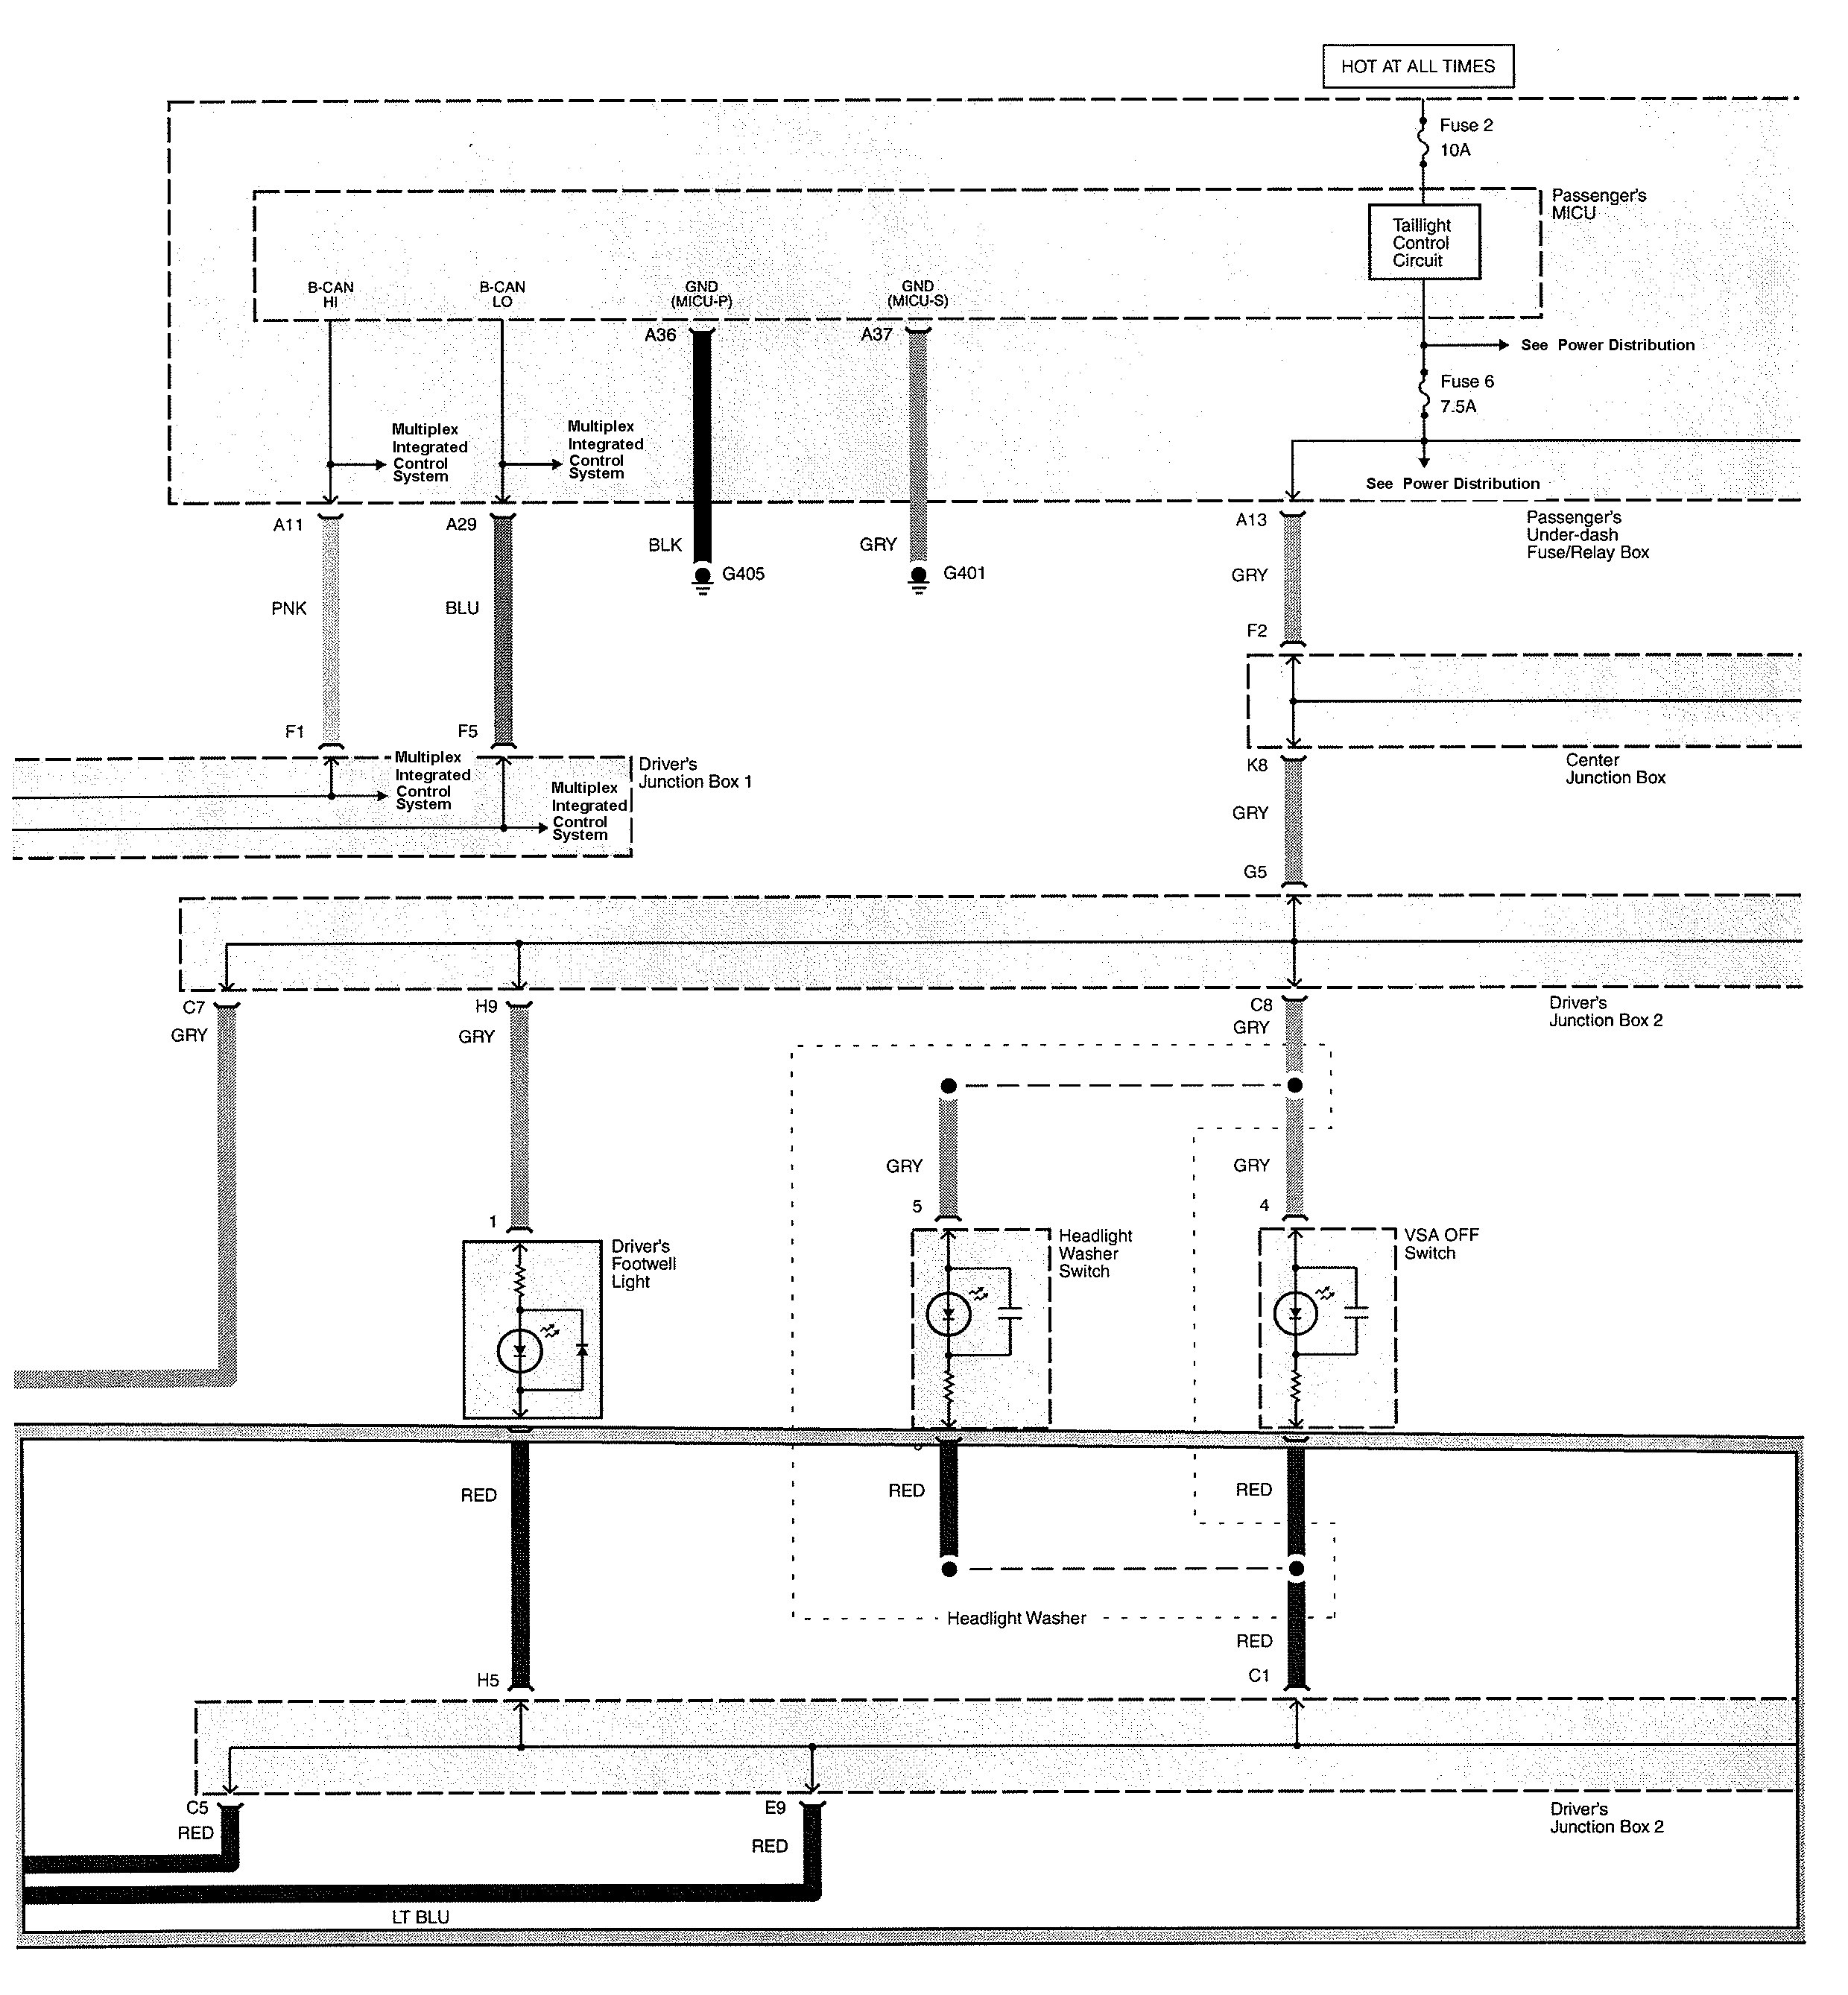 Acura TL (2010) - wiring diagrams - instrument panel lamp -  Carknowledge.info   Acura Tl 2010 Wiring Diagram      Carknowledge.info